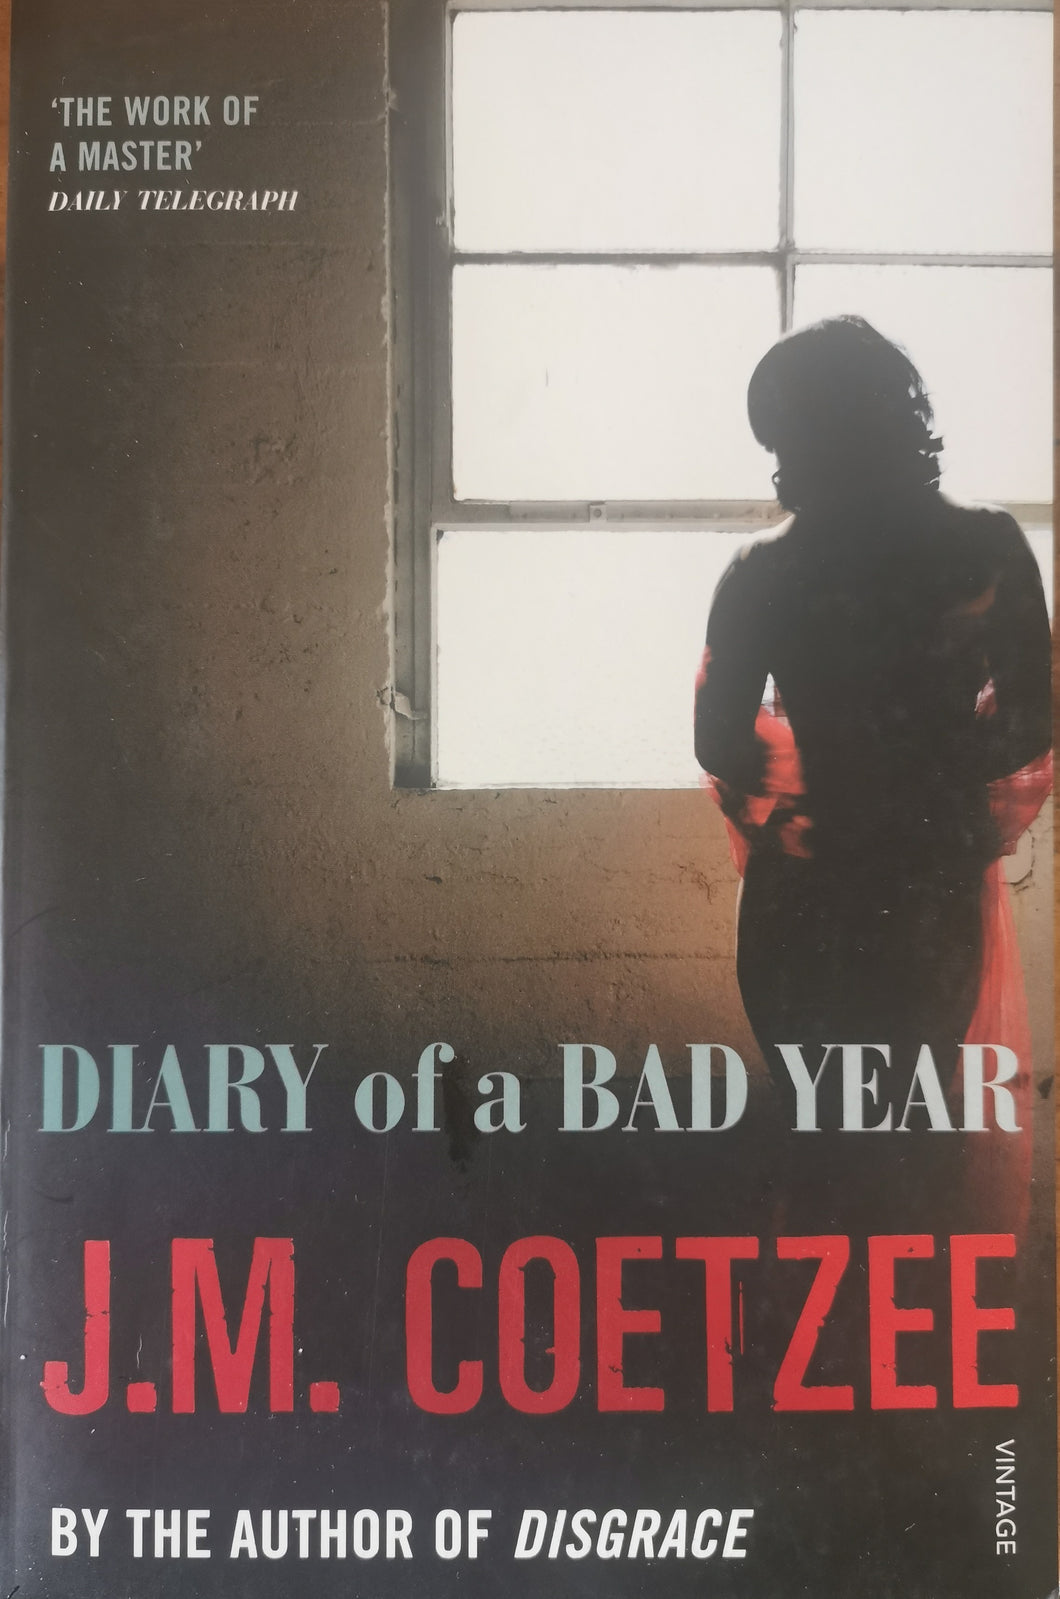 JM Coetzee - Diary of a Bad Year